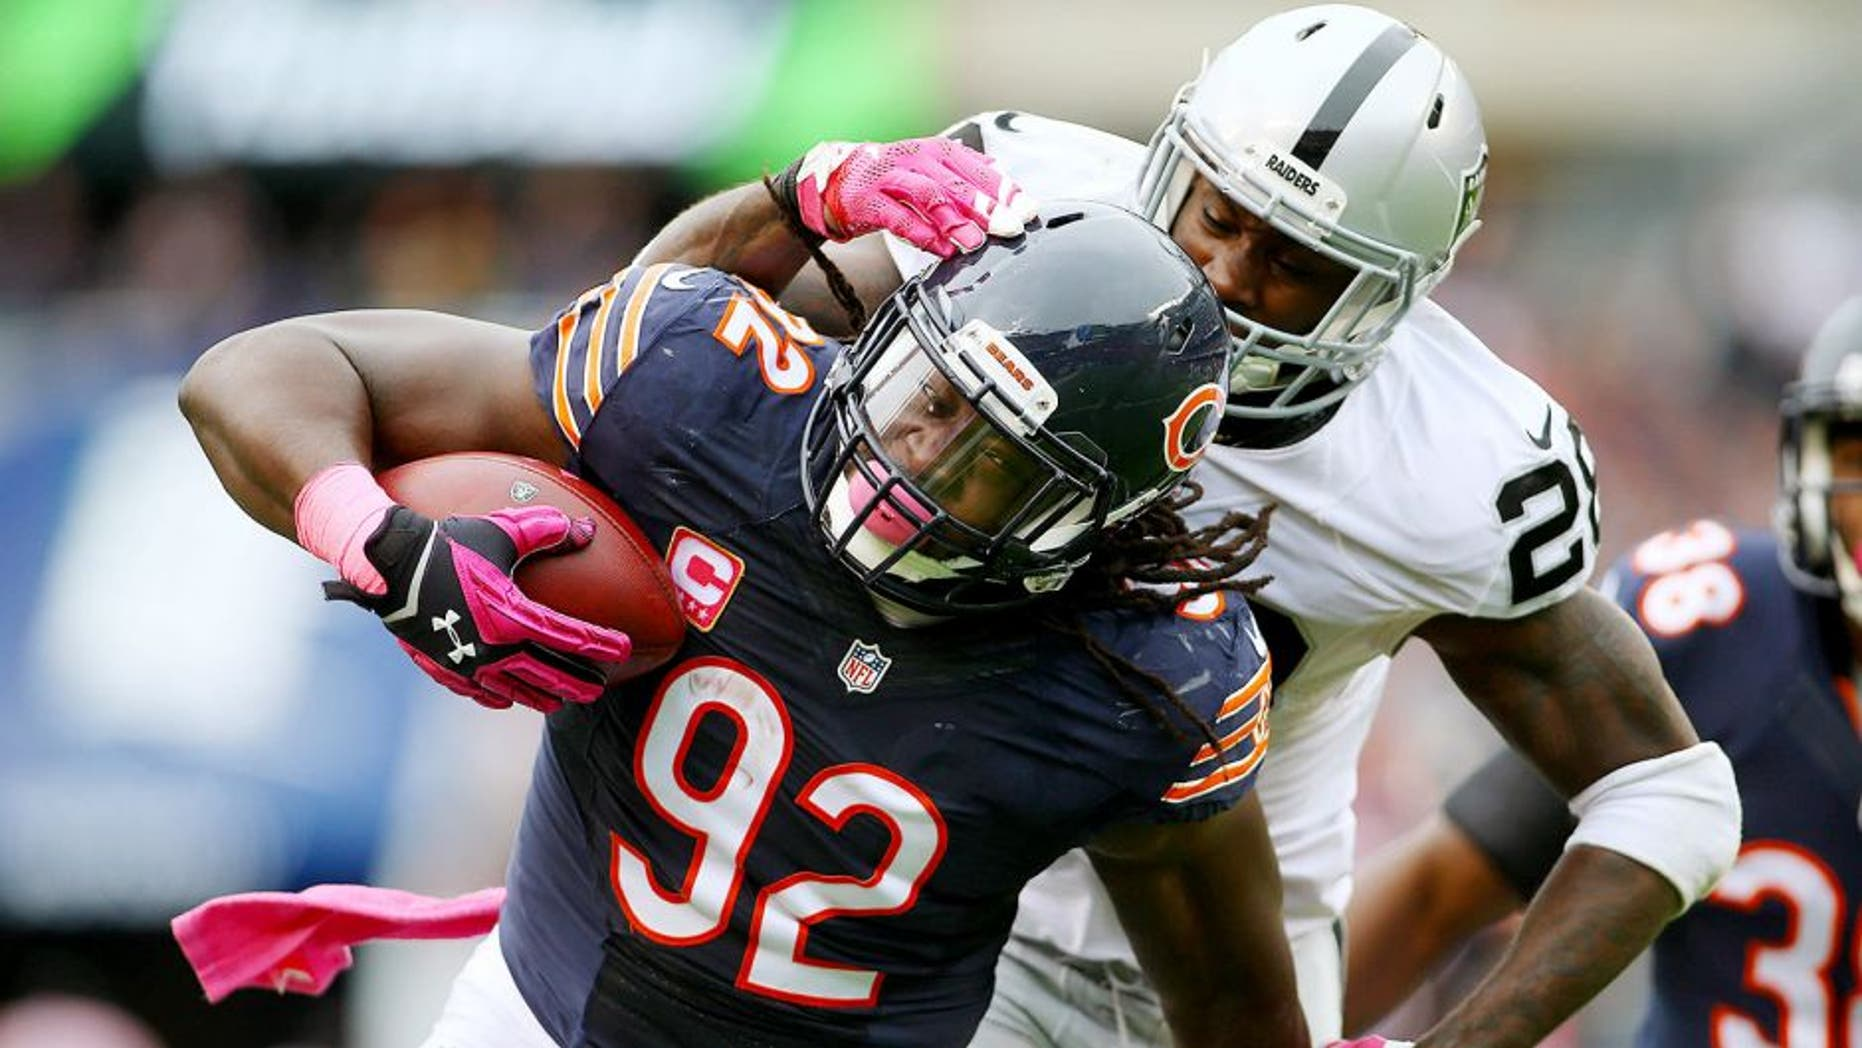 Oct 4, 2015; Chicago, IL, USA; Chicago Bears outside linebacker Pernell McPhee (92) intercepts a pass intended for Oakland Raiders running back Latavius Murray (28) during the second quarter at Soldier Field. Mandatory Credit: Jerry Lai-USA TODAY Sports